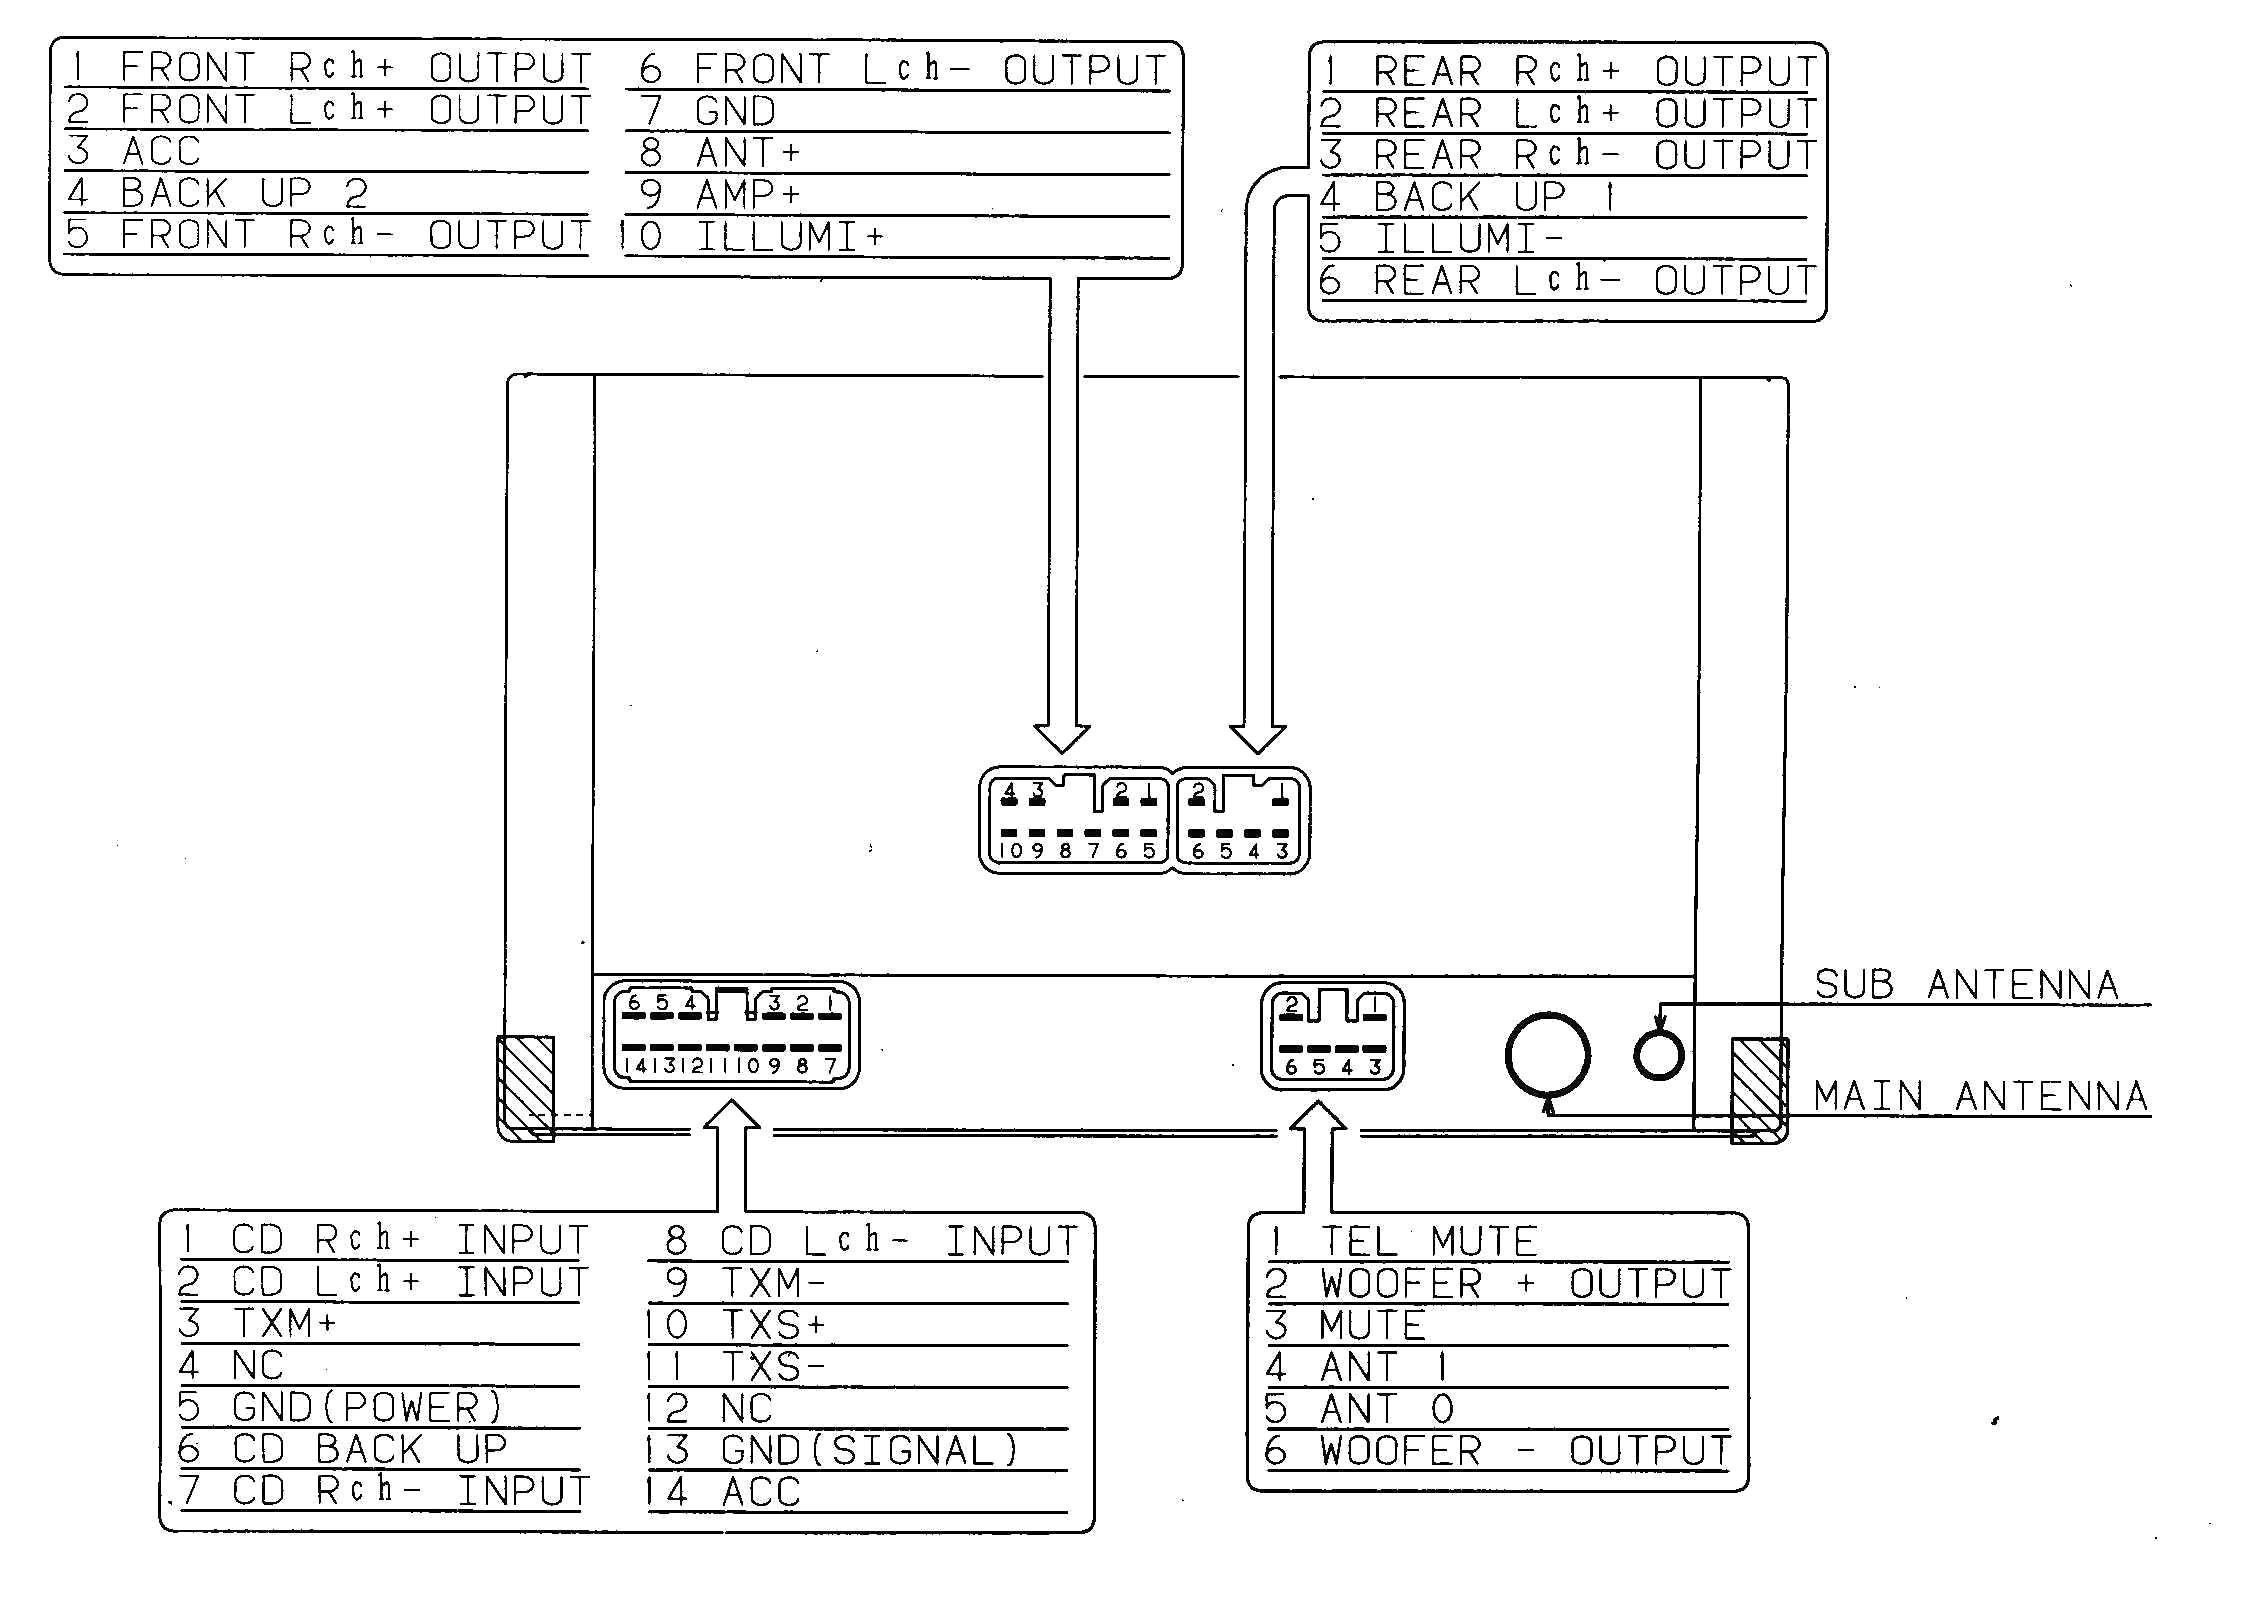 unique wiring diagram avic n1 car dvd player diagramunique wiring diagram avic n1 car dvd player [ 2255 x 1598 Pixel ]